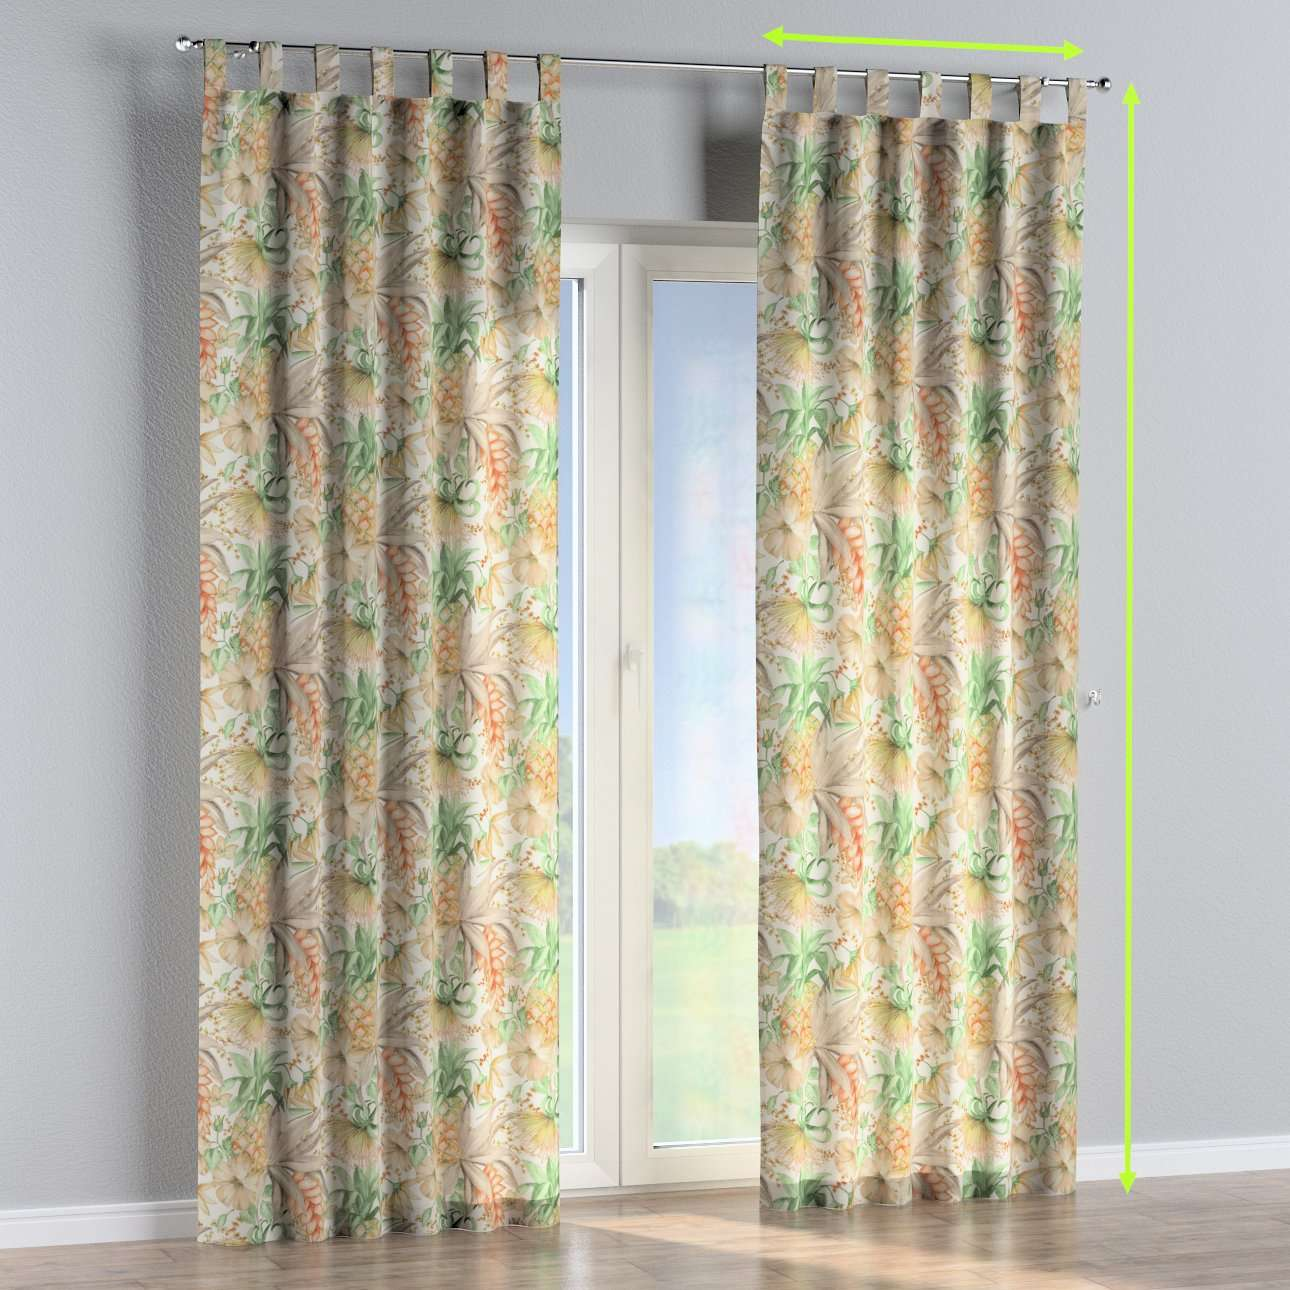 Tab top curtains in collection Urban Jungle, fabric: 141-61